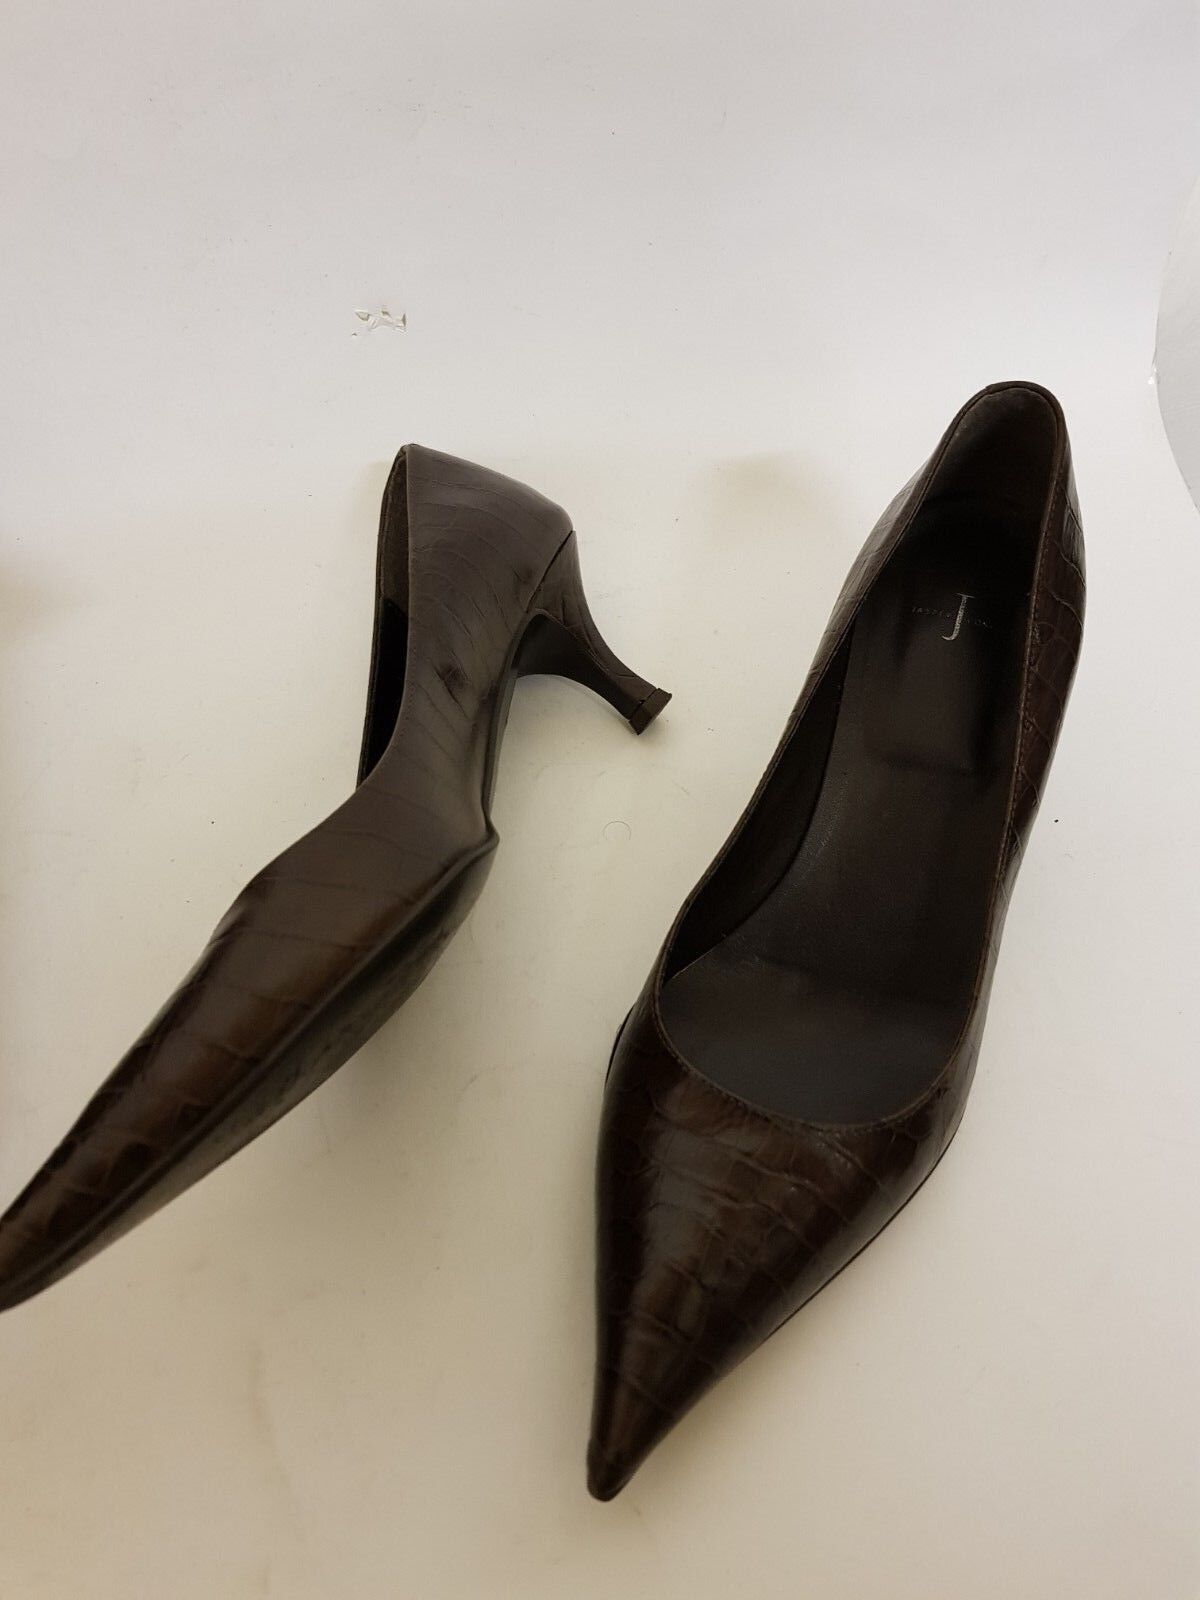 BOXED JASPER CONRAN BROWN LEATHER  KITTEN HEEL SHOES UK 6